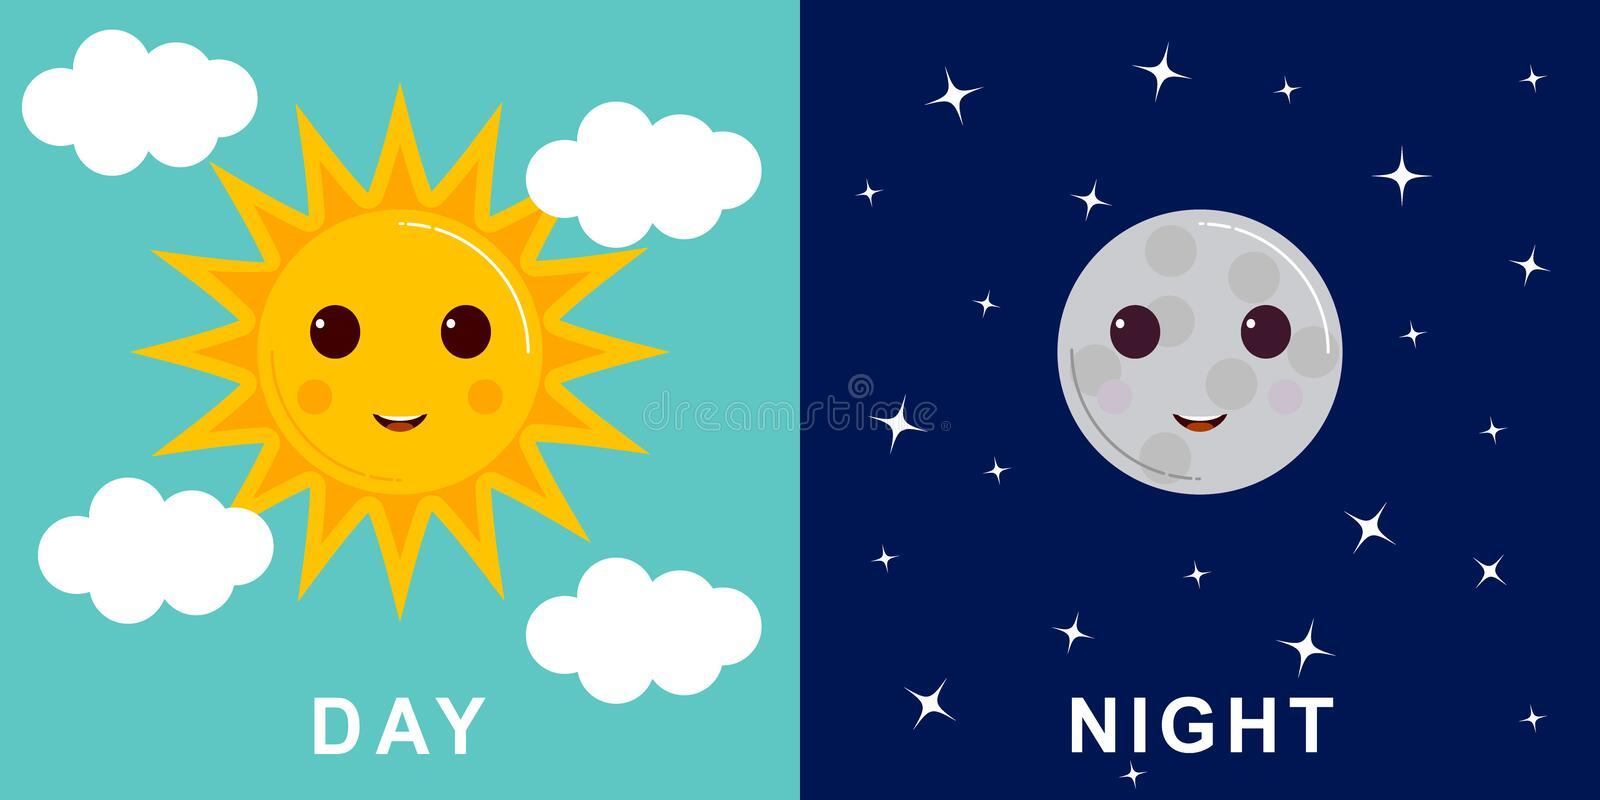 Day and night illustrations with funny smiling cartoon characters of sun and moon stock illustration